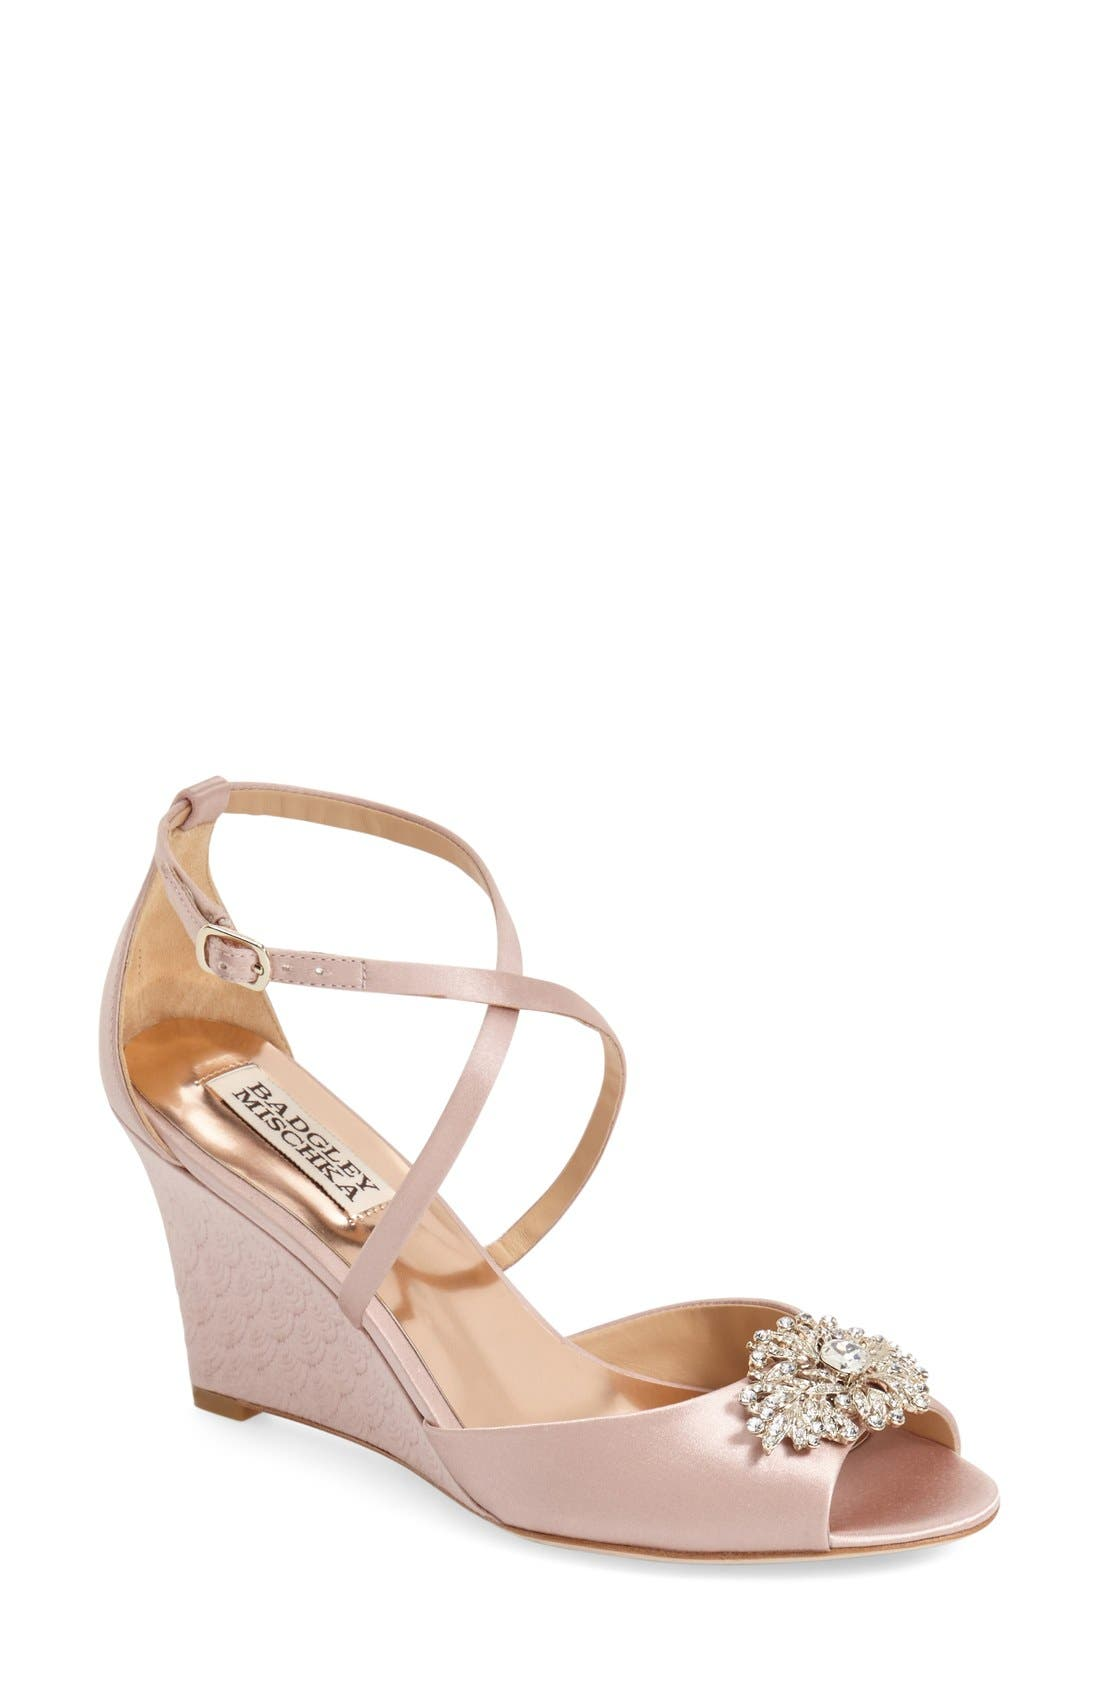 Badgley Mischka 'Abigail' Peep Toe Wedge (Women)